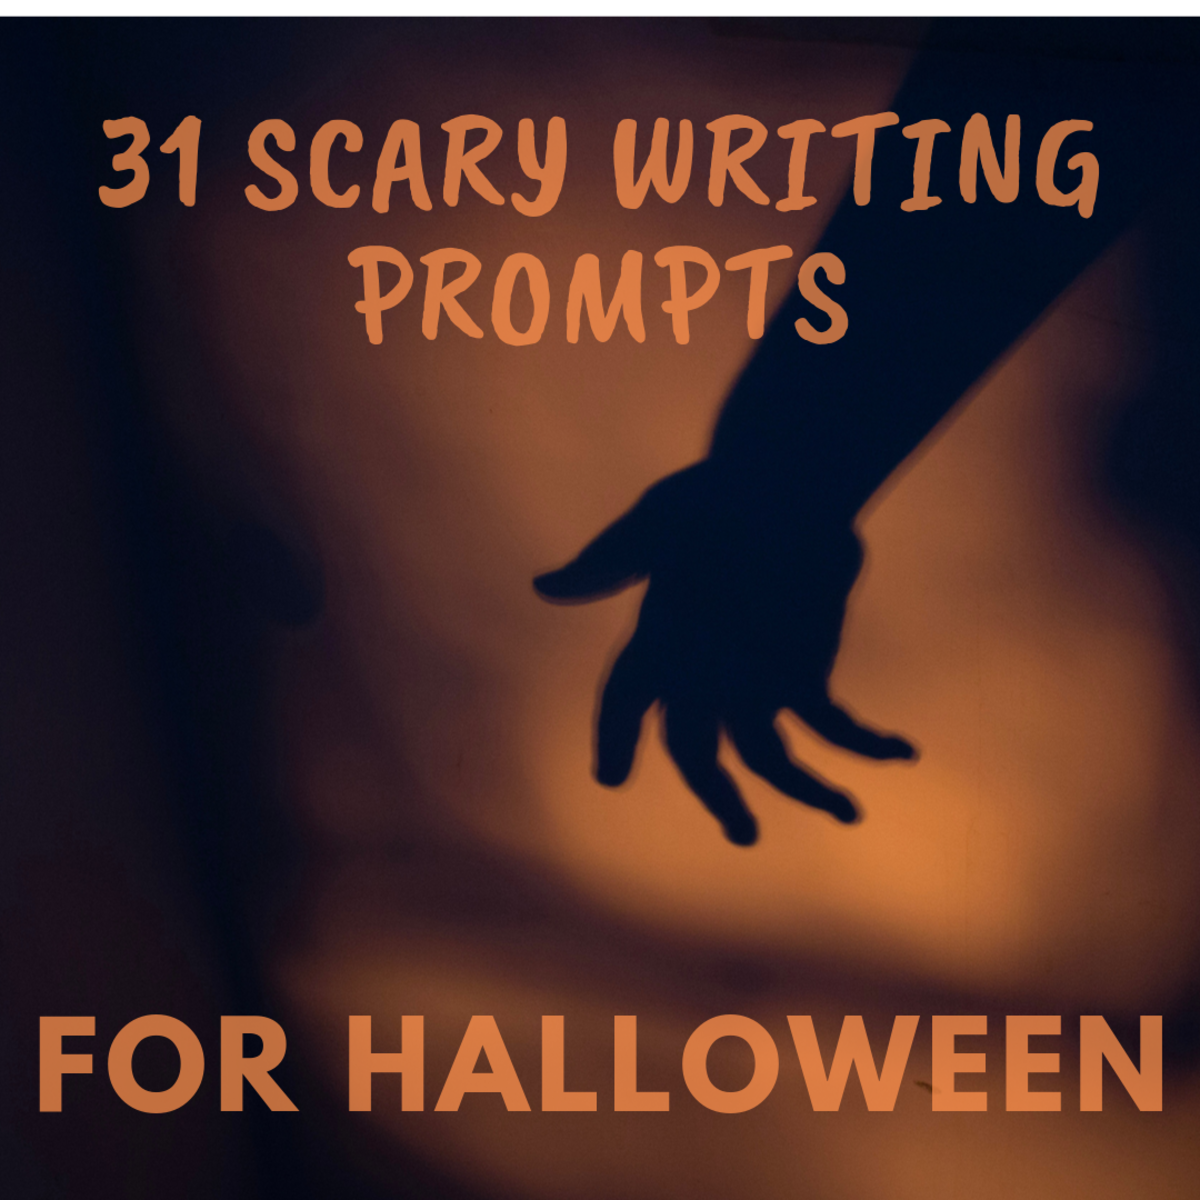 31 Horrifying Writing Prompts to Scare You This Halloween